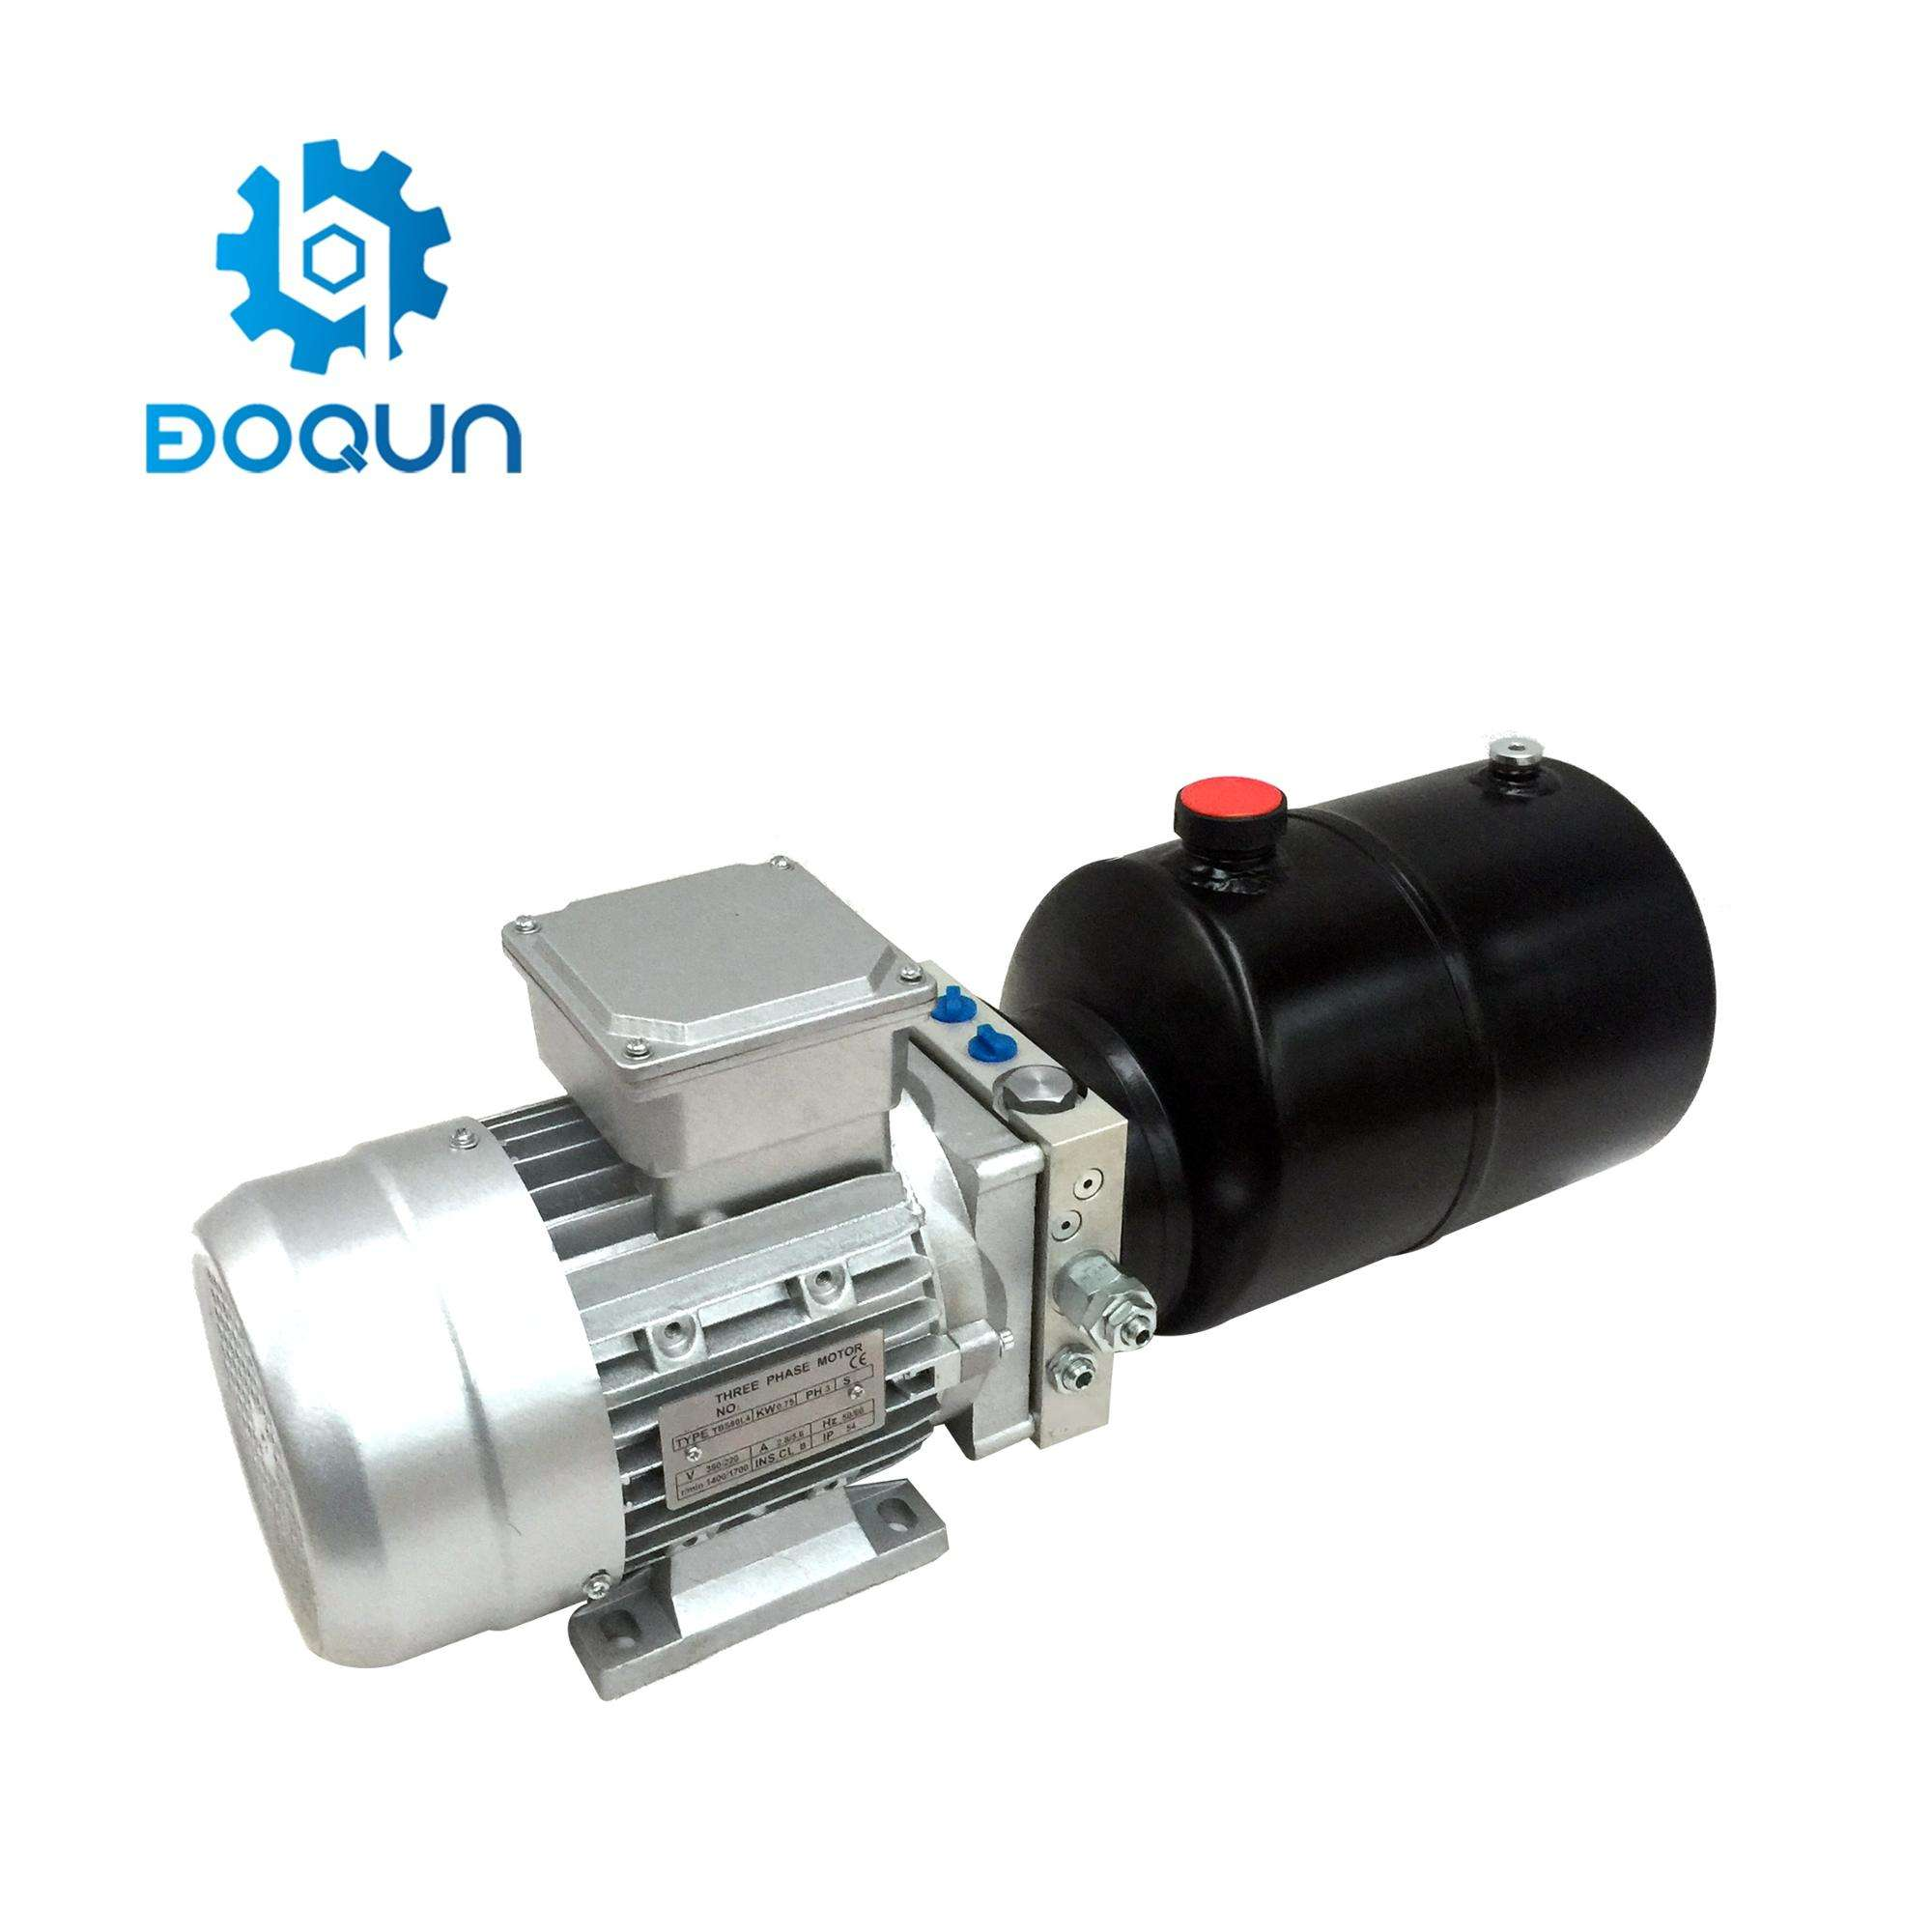 DD01A Boqun 380 V AC 5 Quart Metal Reservoir Double Acting Electric Hydraulic Power Unit สำหรับ Dock Leveler